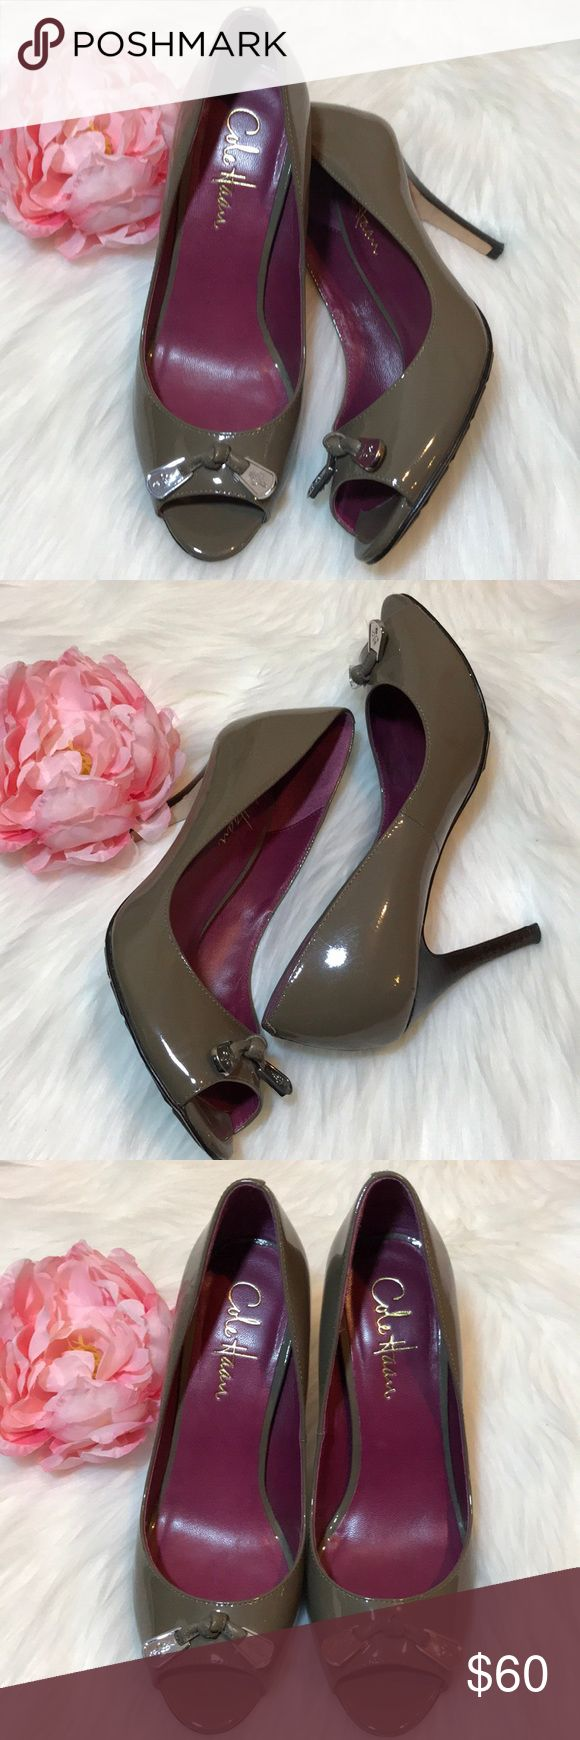 Cole Haan peep toe pumps. Cole Haan  Nike Air olive green peep toe pumps with bow on the front. Very comfortable, wore once in excellent condition. 3 1/2 inches heels. Cole Haan Shoes Heels